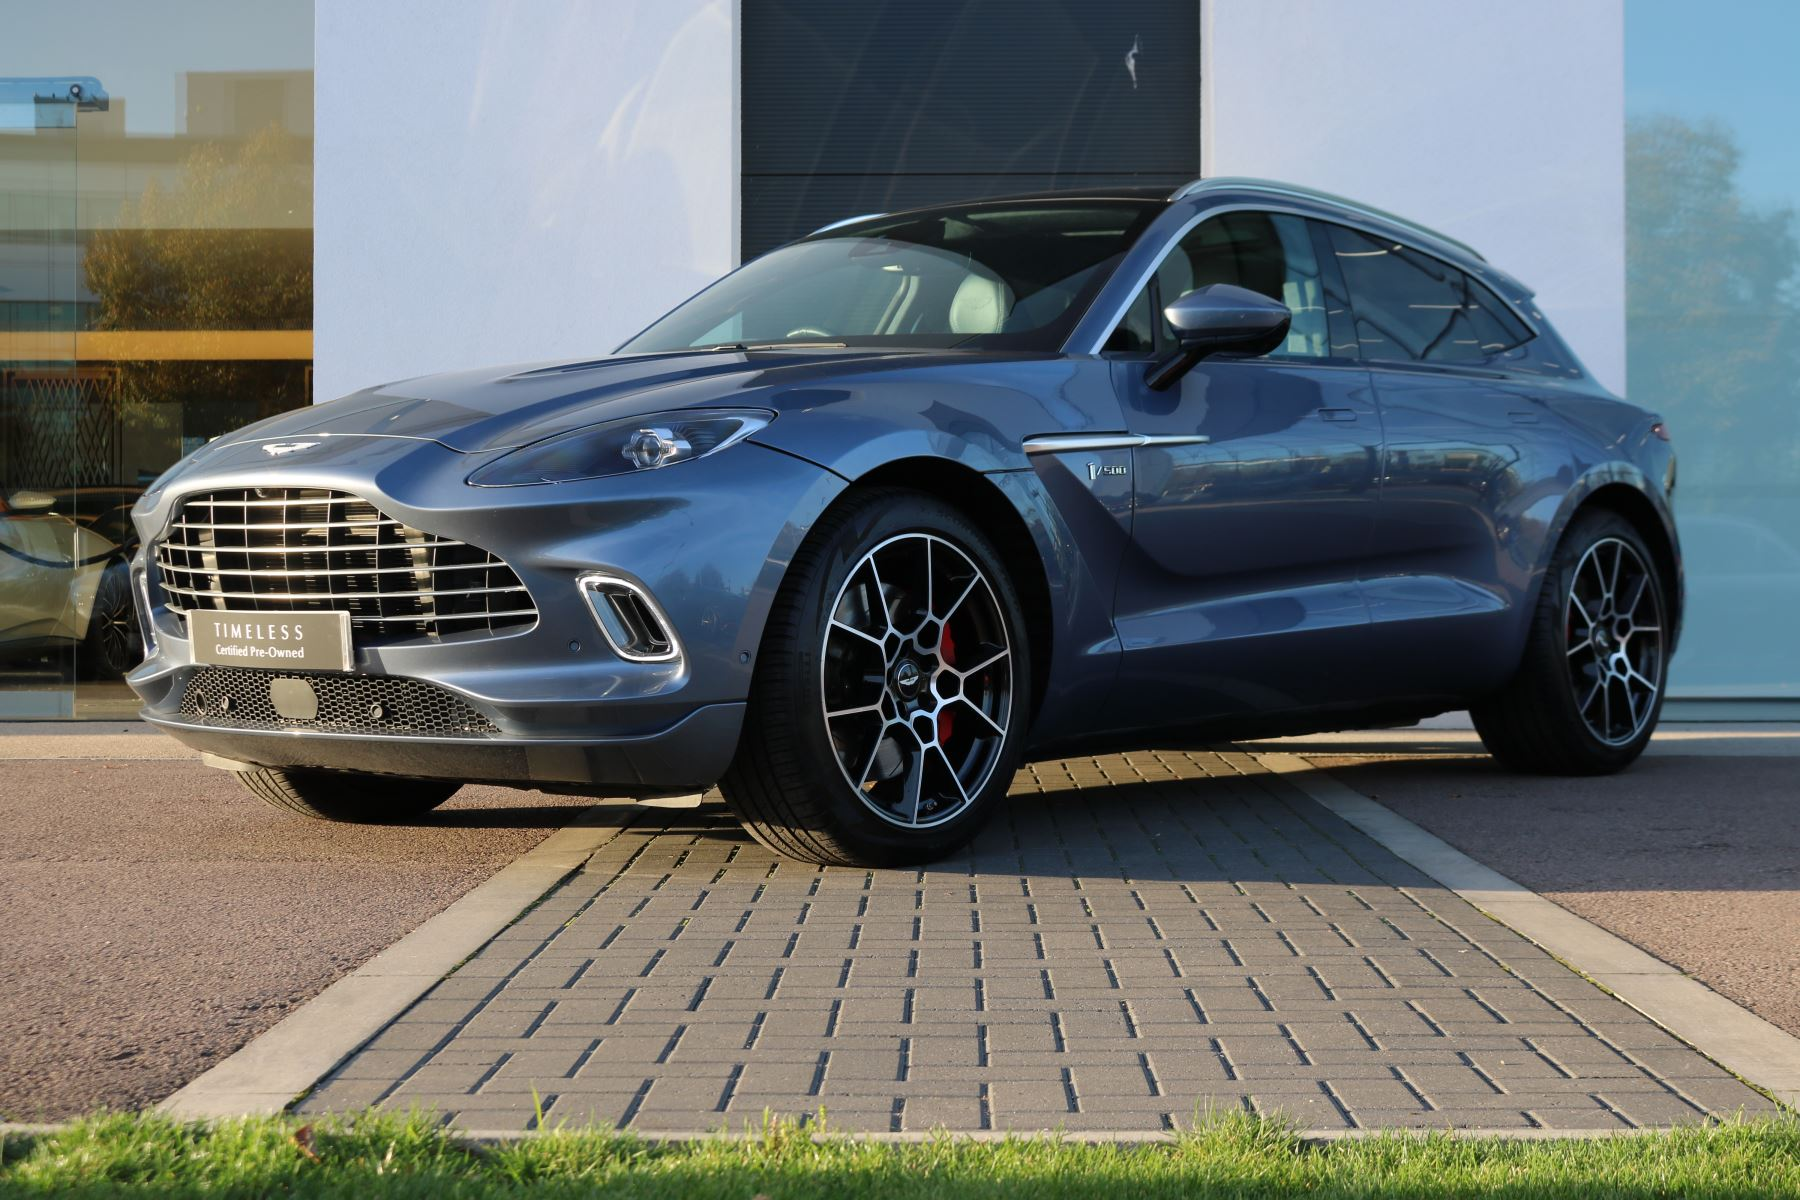 Aston Martin DBX V8 550 Touchtronic 1 of 500 Limited Edition Low Mileage  4.0 Automatic 5 door Estate (2020) image